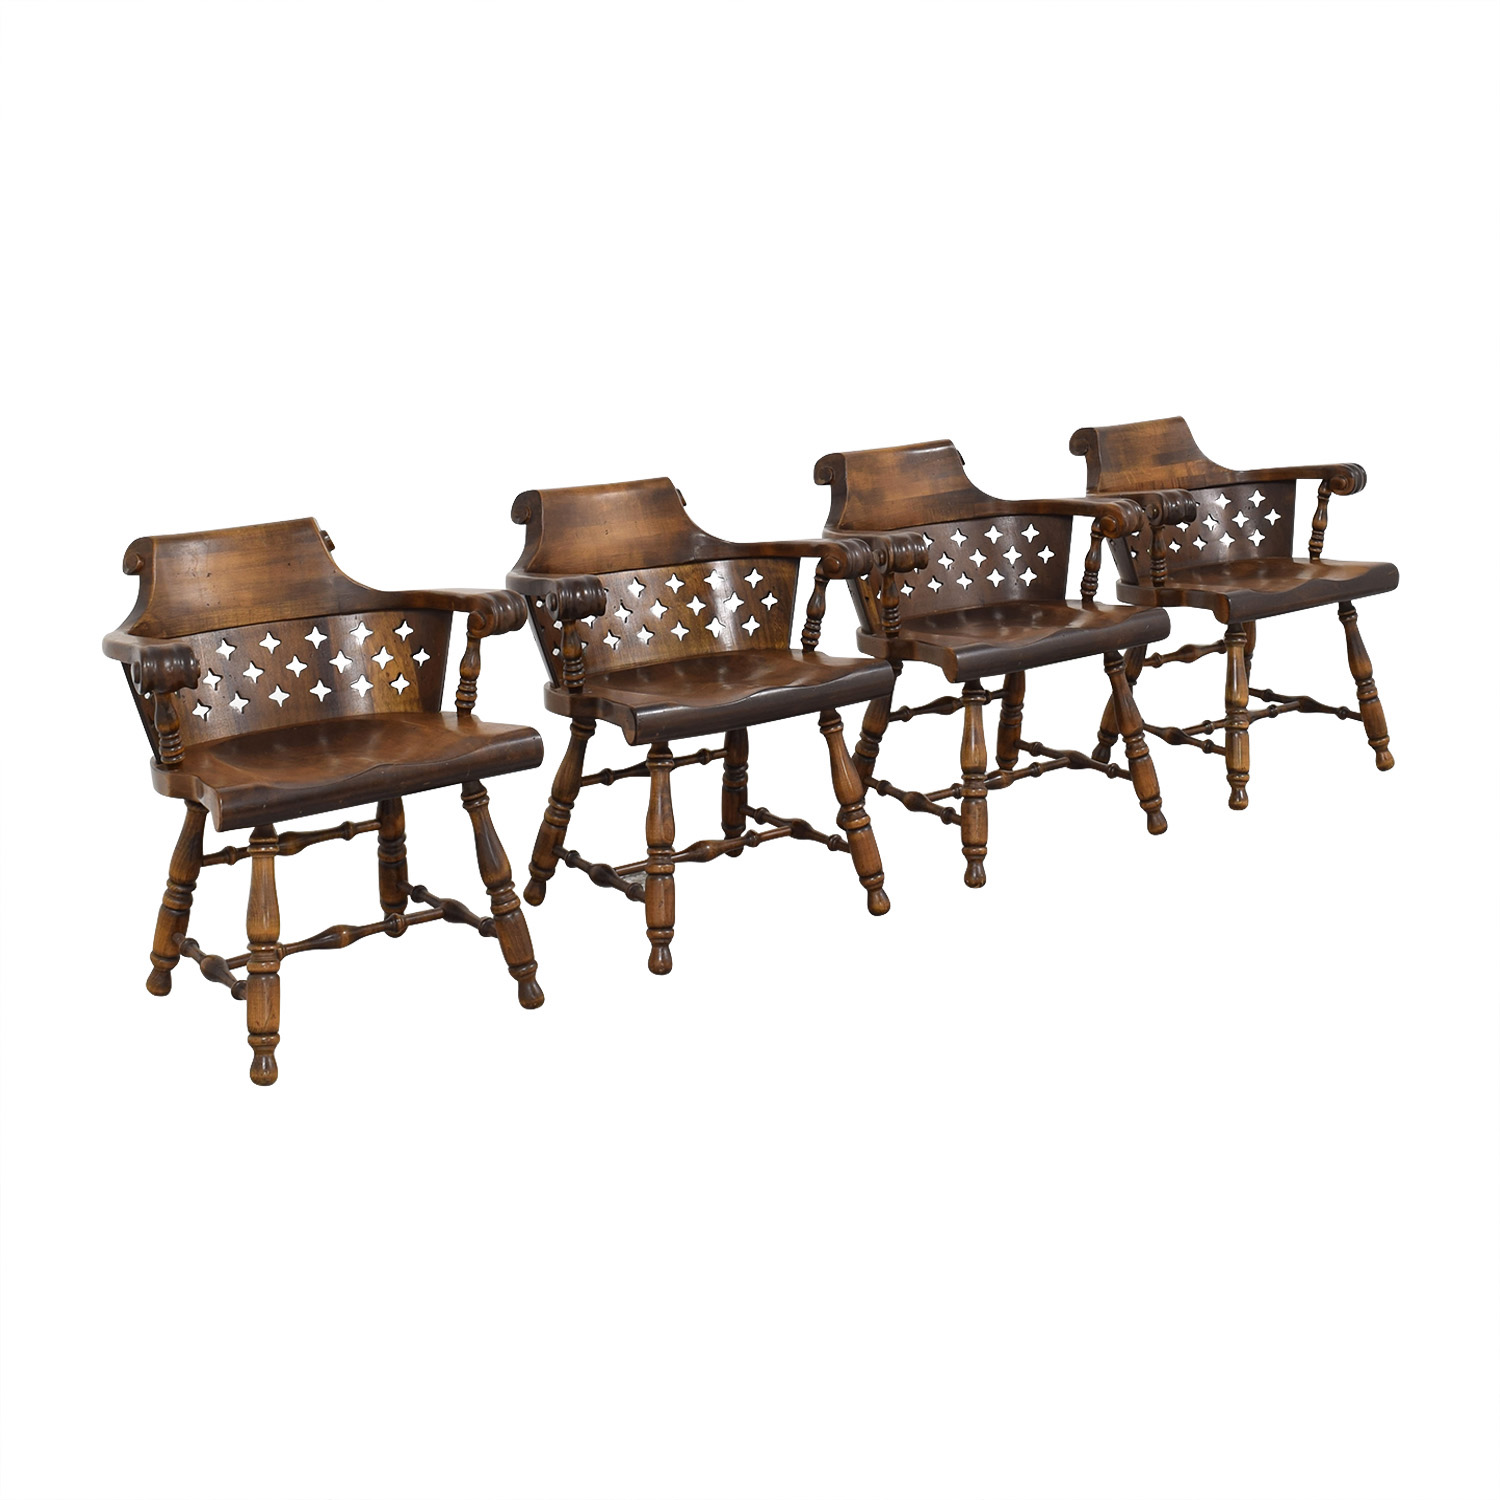 Ethan Allen Ethan Allen Patterned Cutout Dining Chairs discount